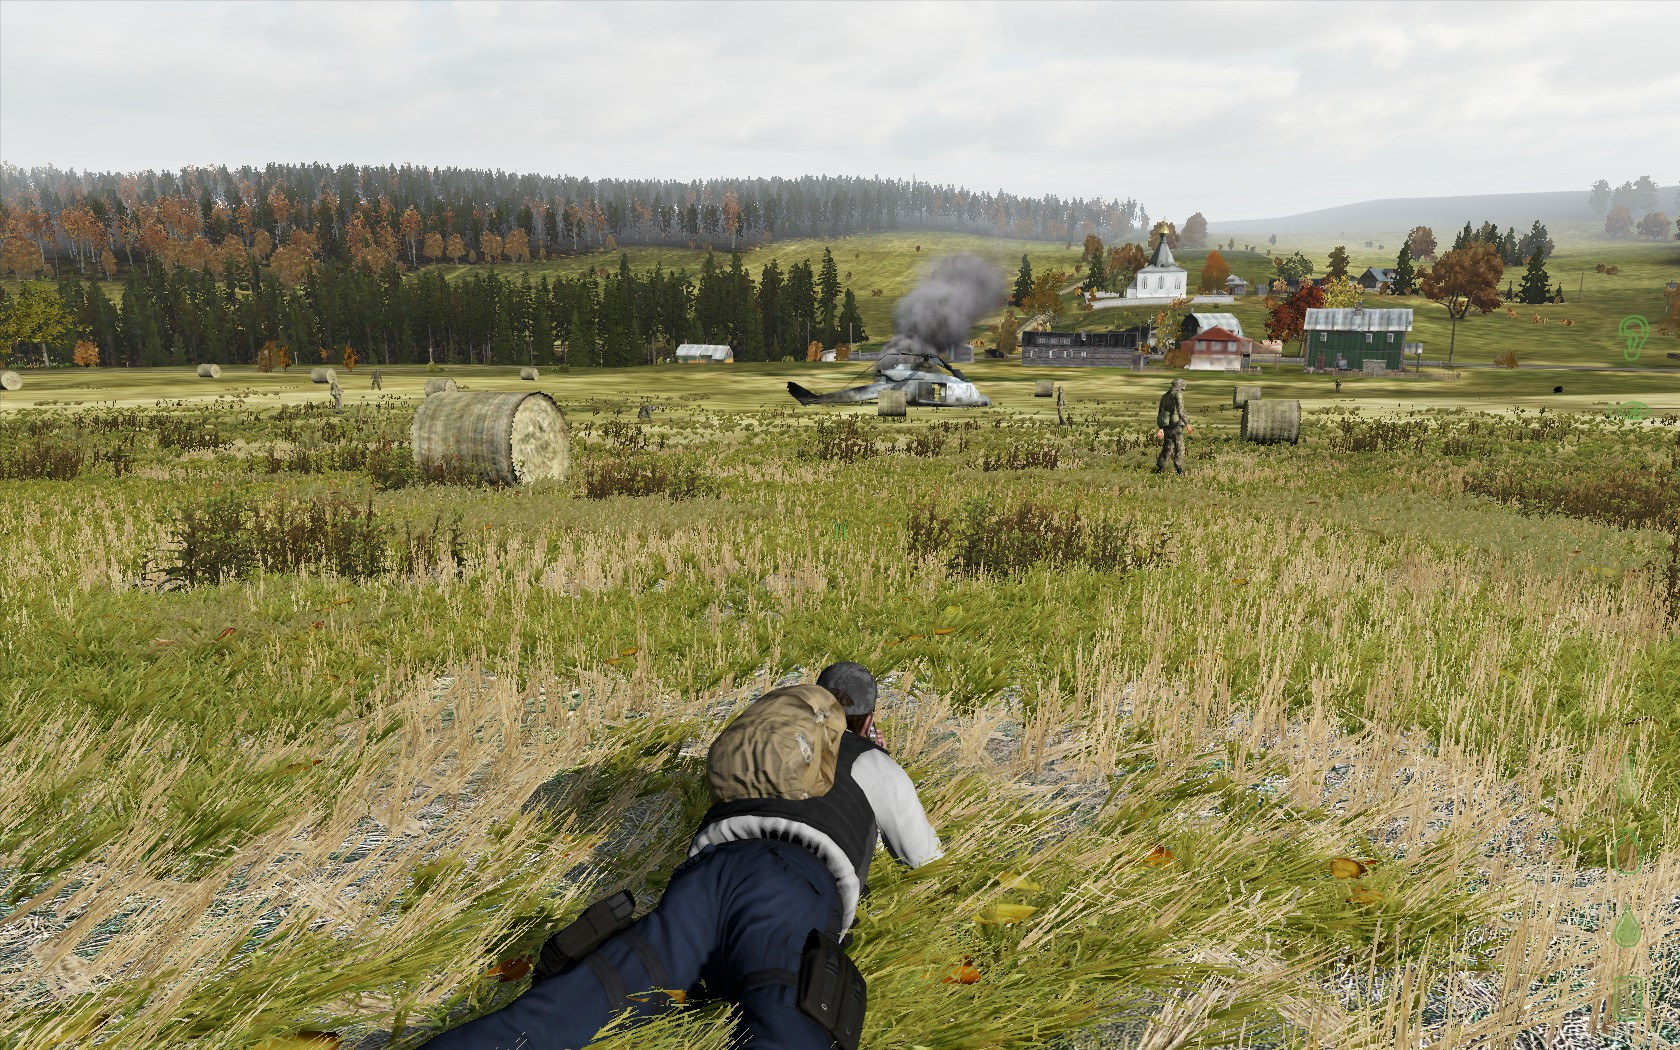 Sneaking up on a heli crash site image - Day Z Survivors